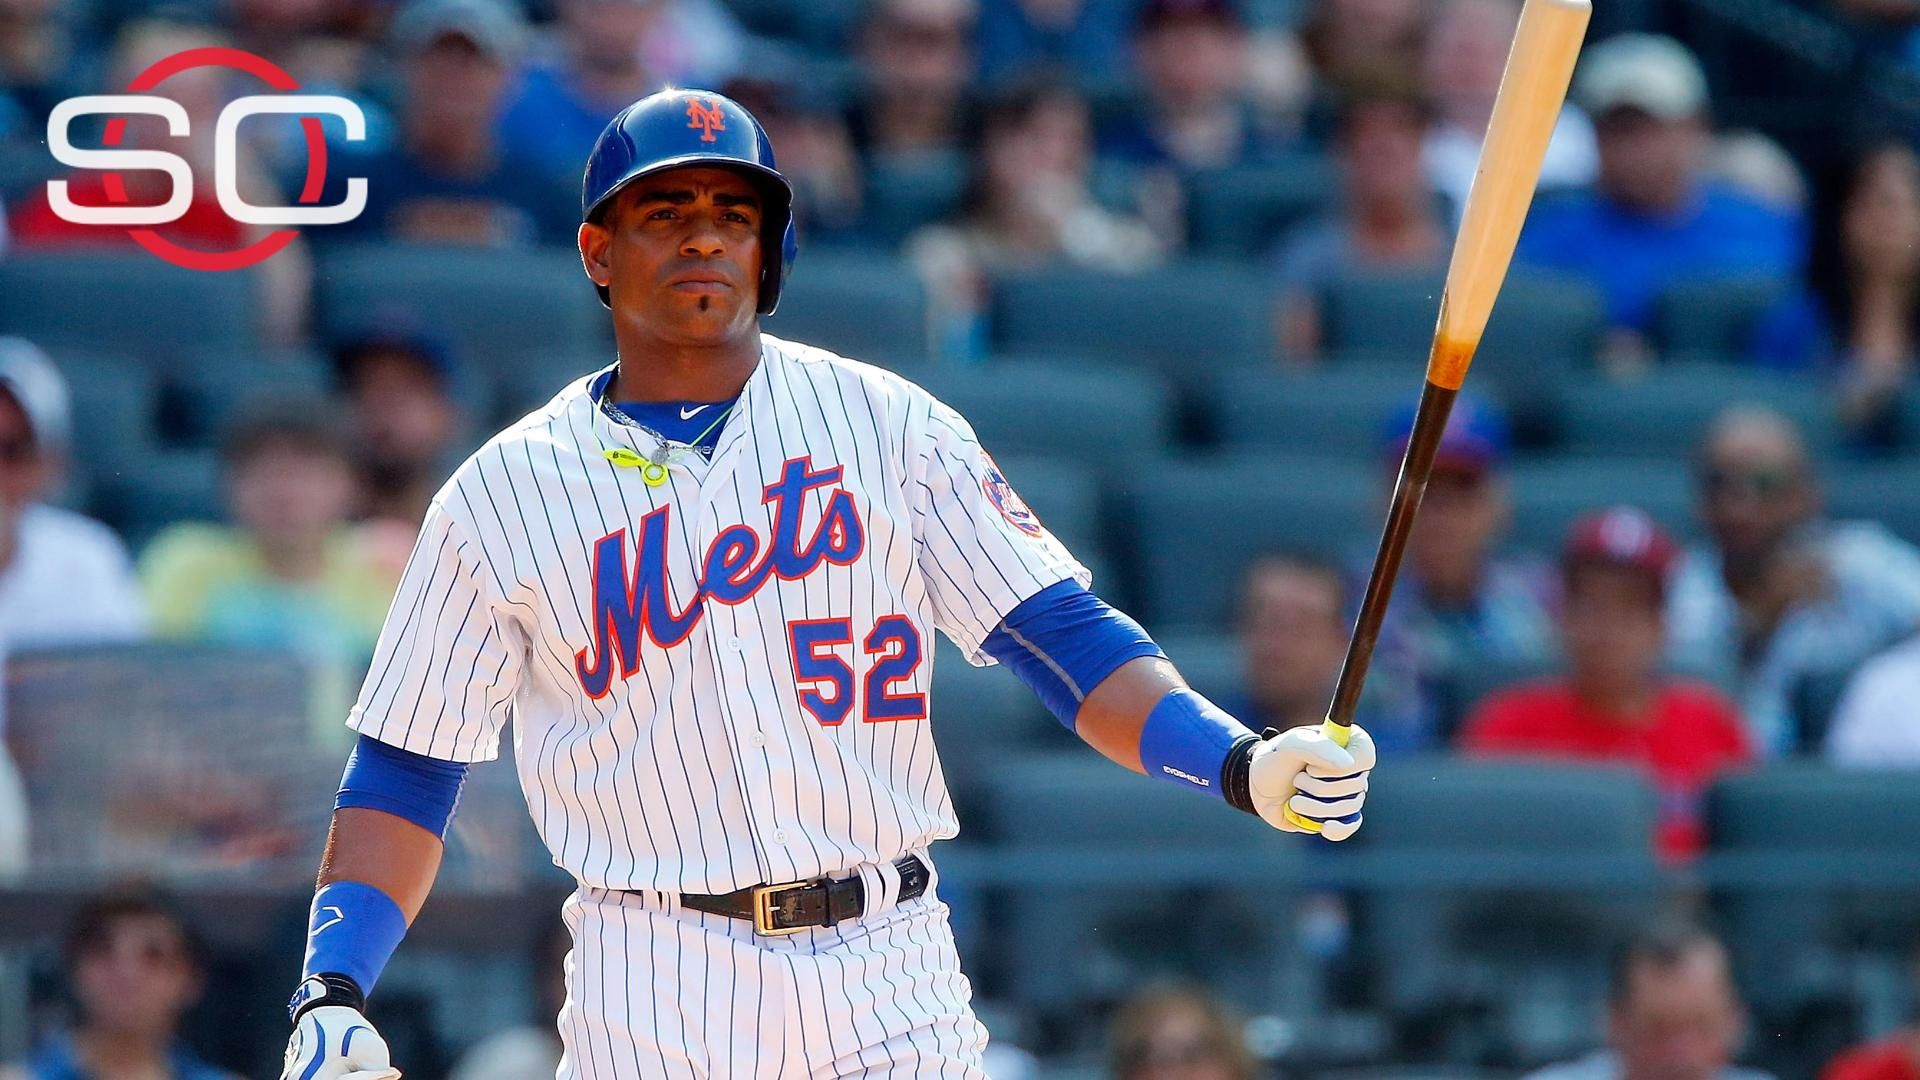 Cespedes seeking contract of at least six years